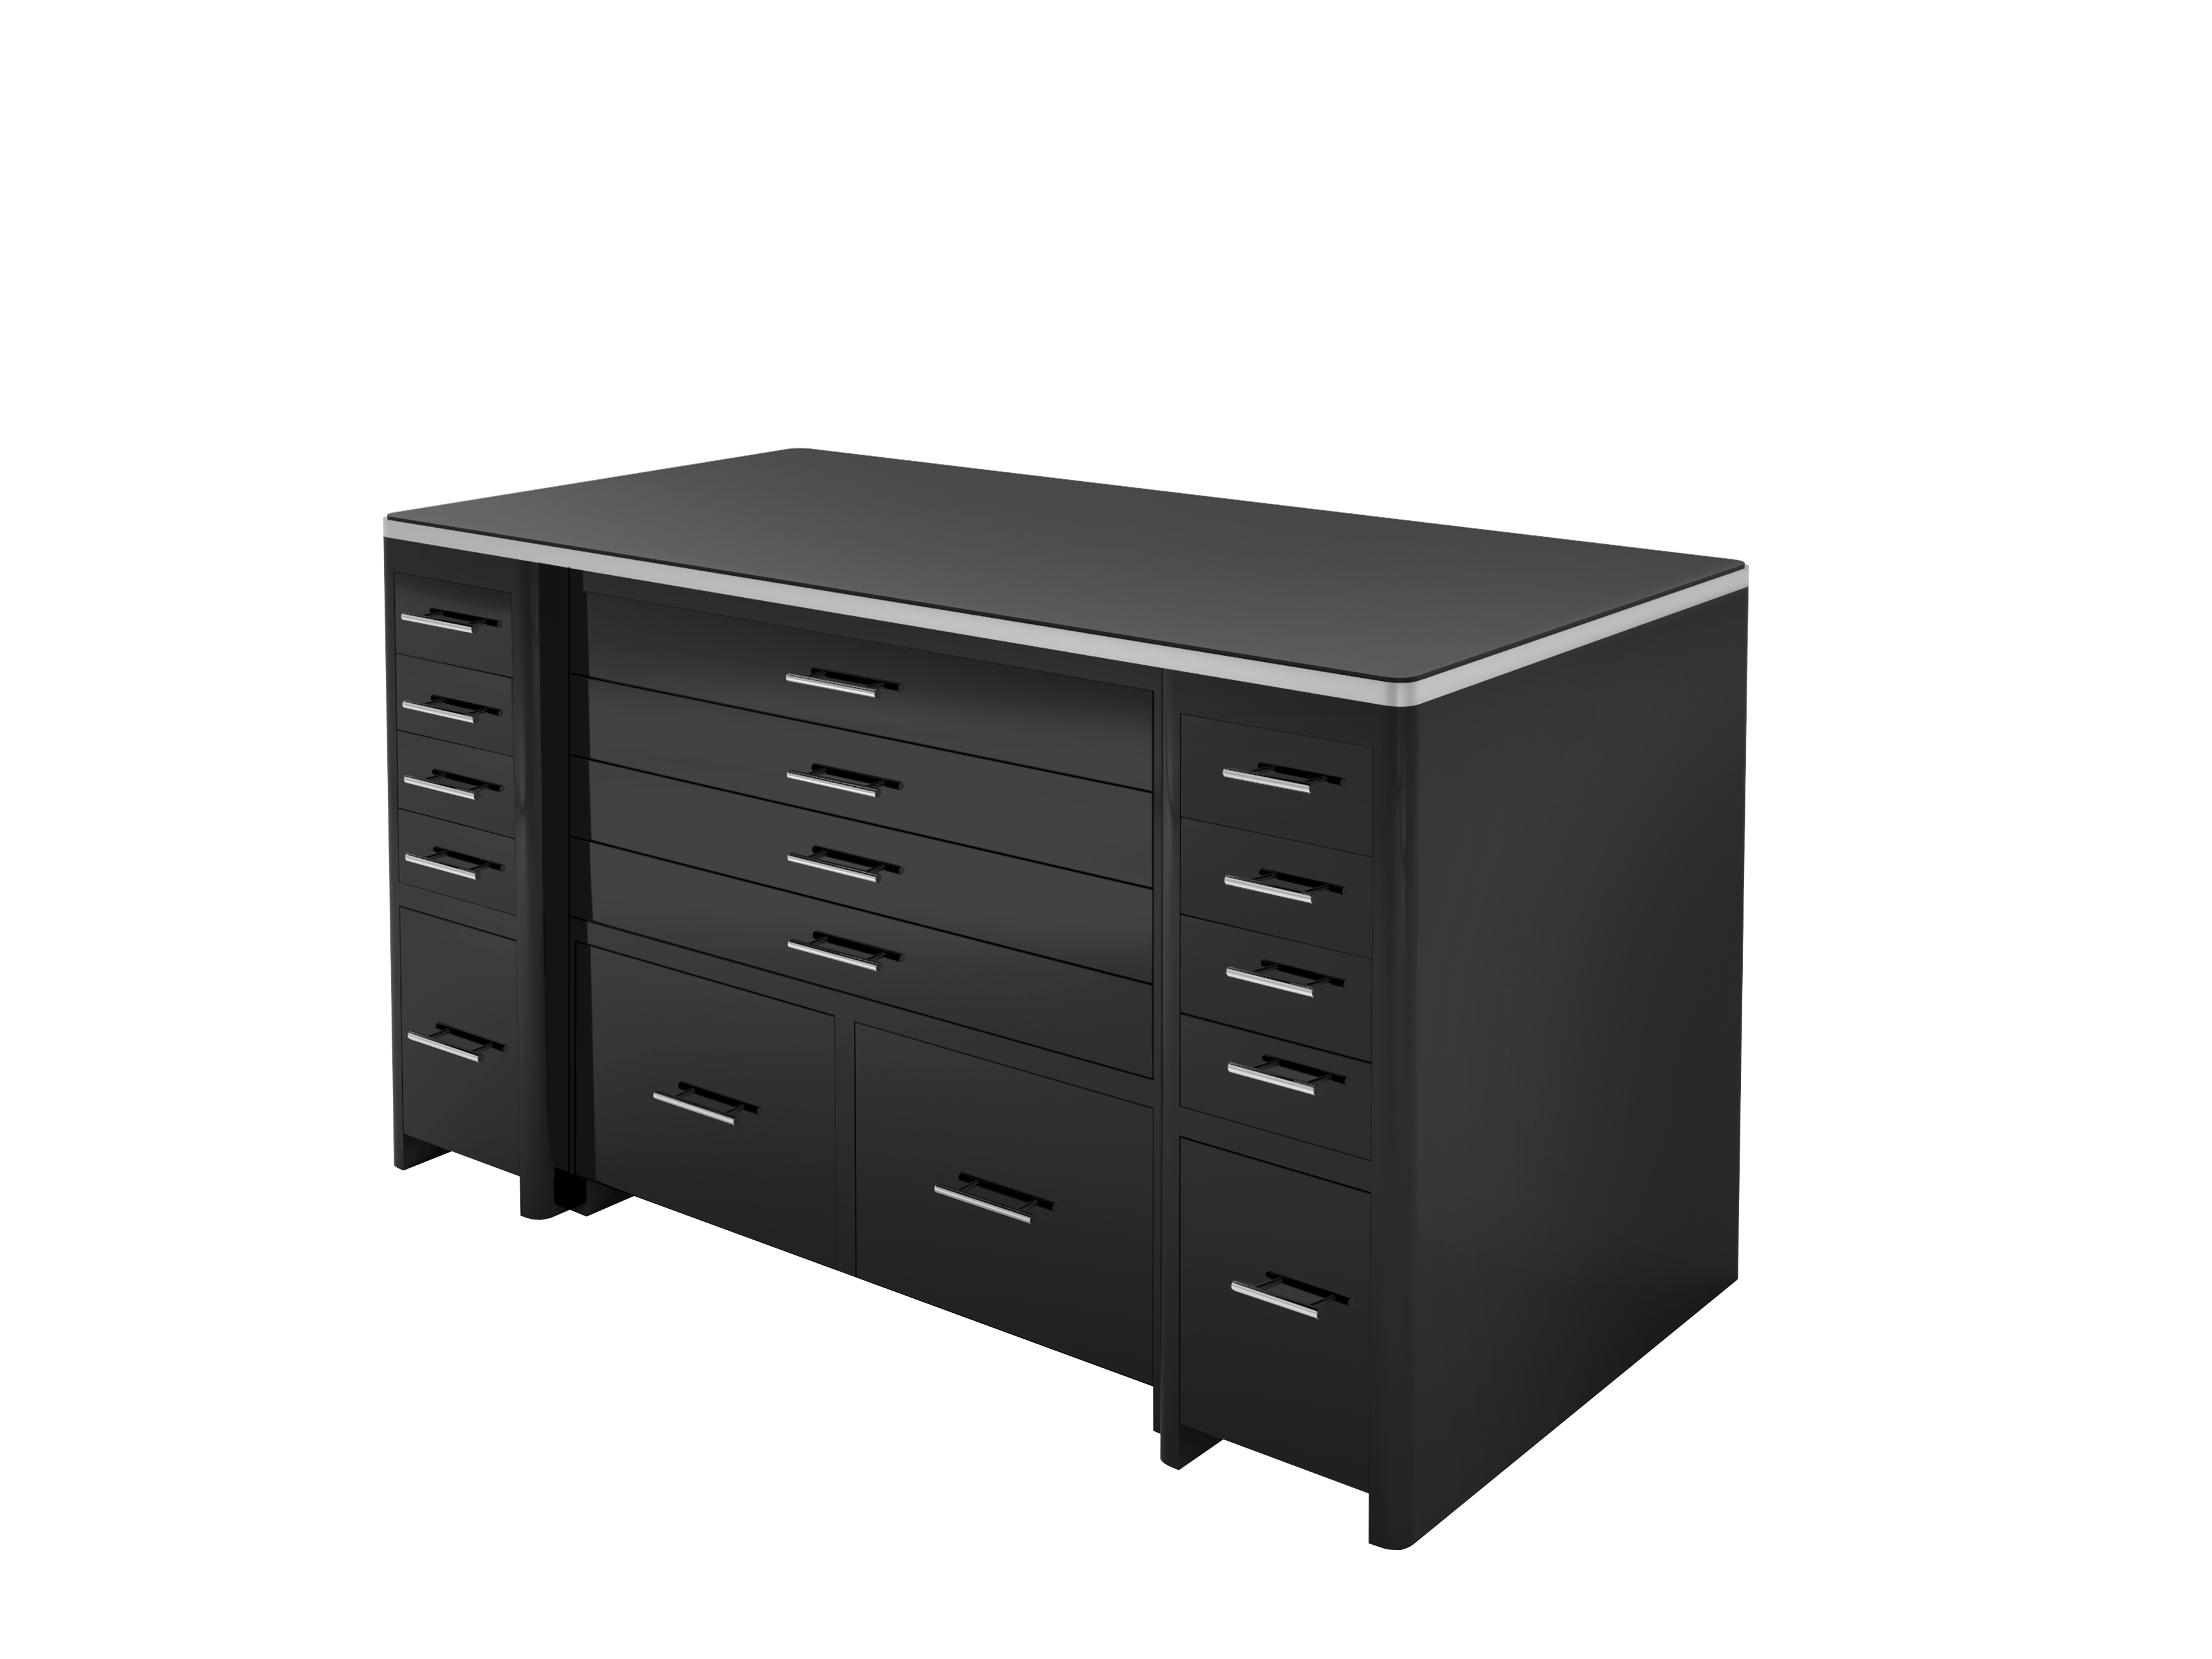 High Gloss Black Desk With Drawer Front, Lacquer, High End Office Furniture,  Chrome